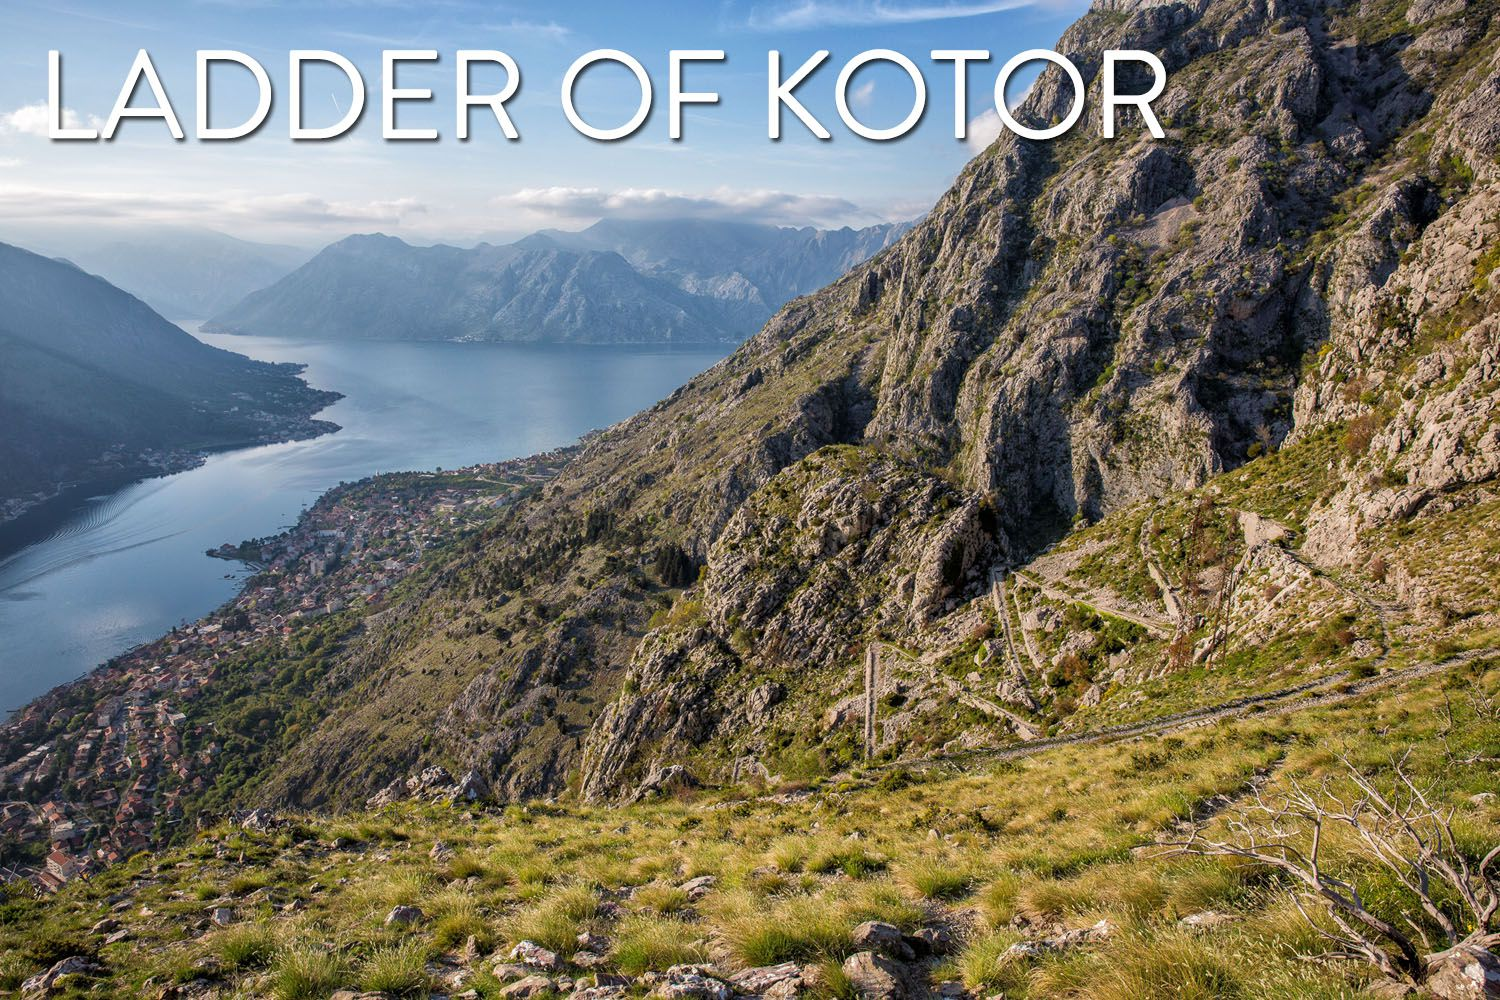 Ladder of Kotor